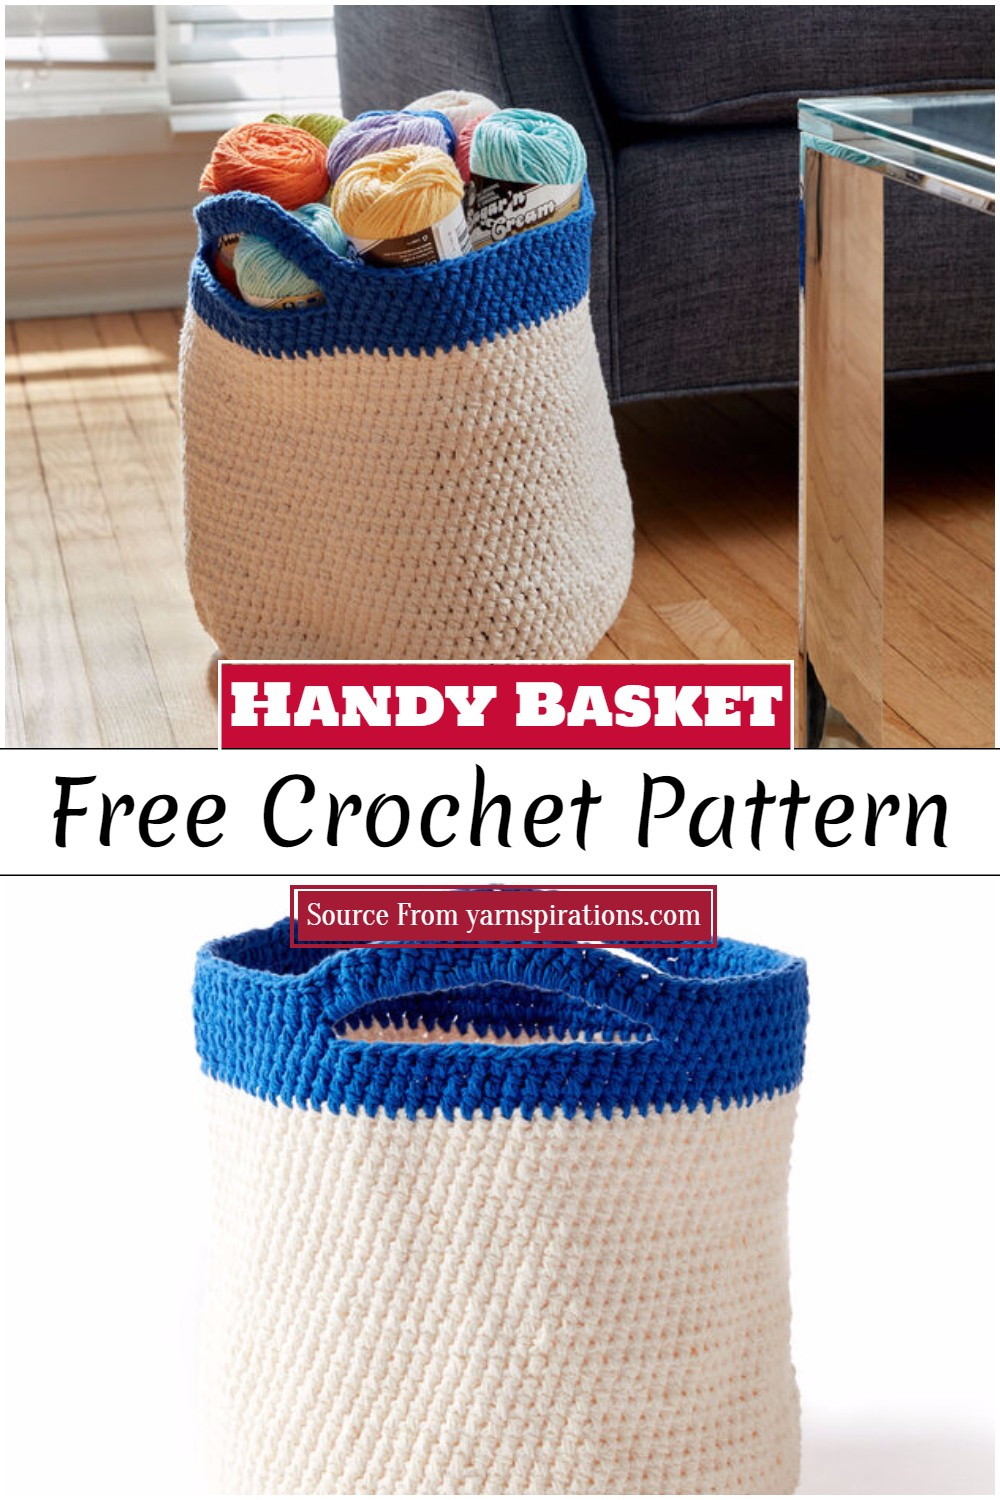 Crochet Handy Basket Pattern